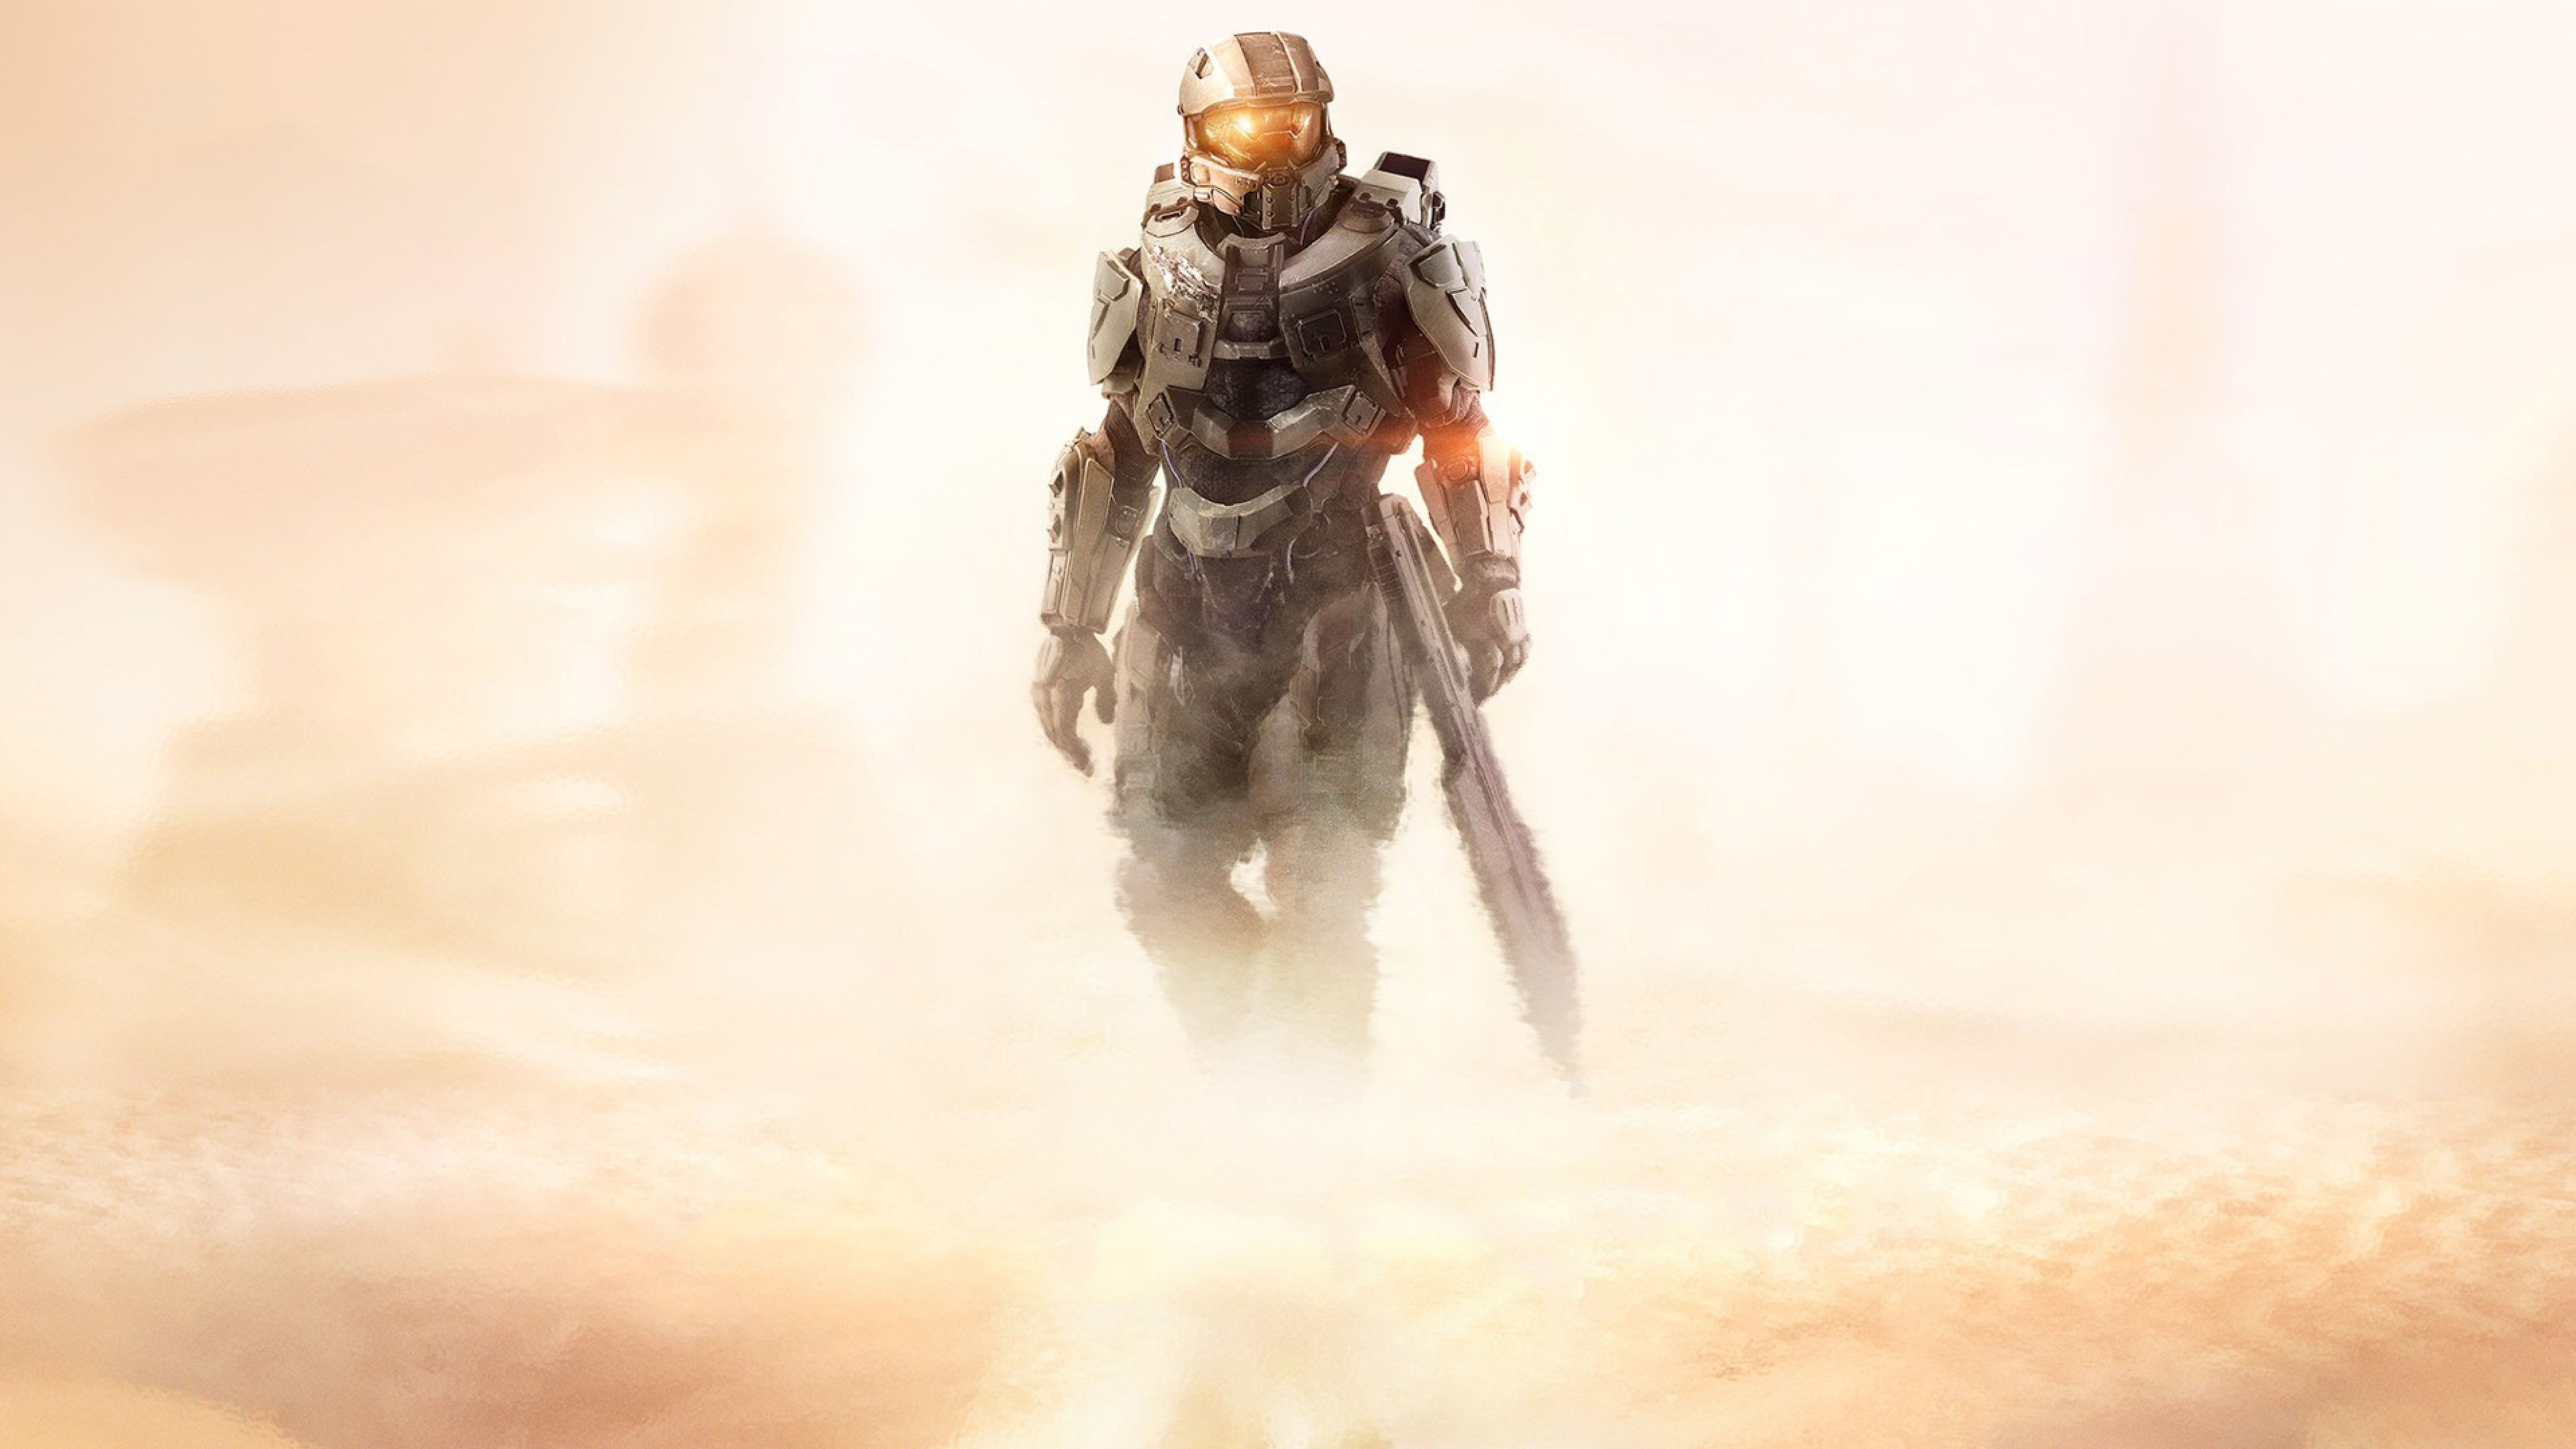 halo 5 master chief iphone wallpaper